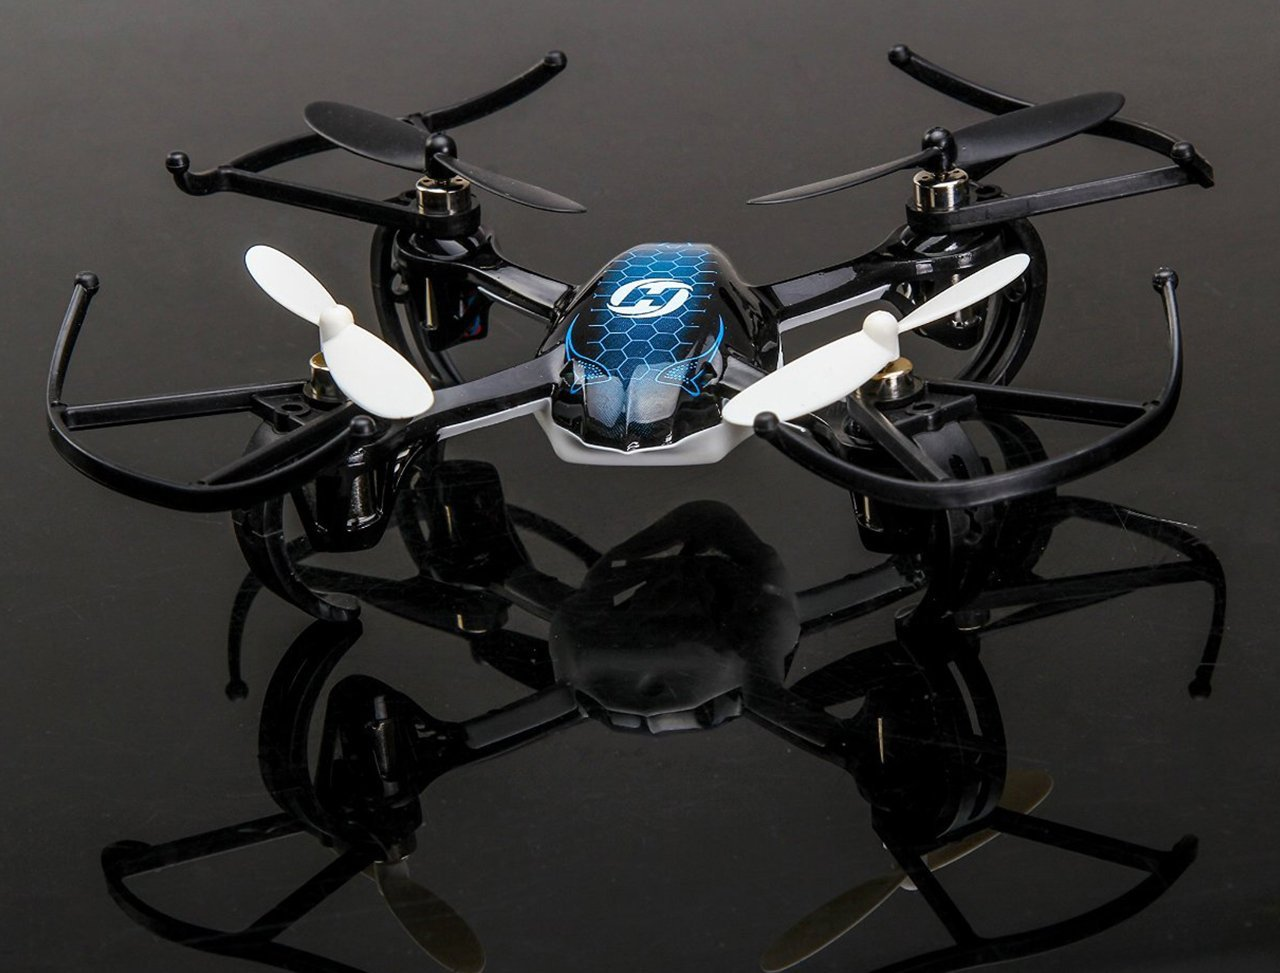 HS170 Predator Review - Outstanding Drone